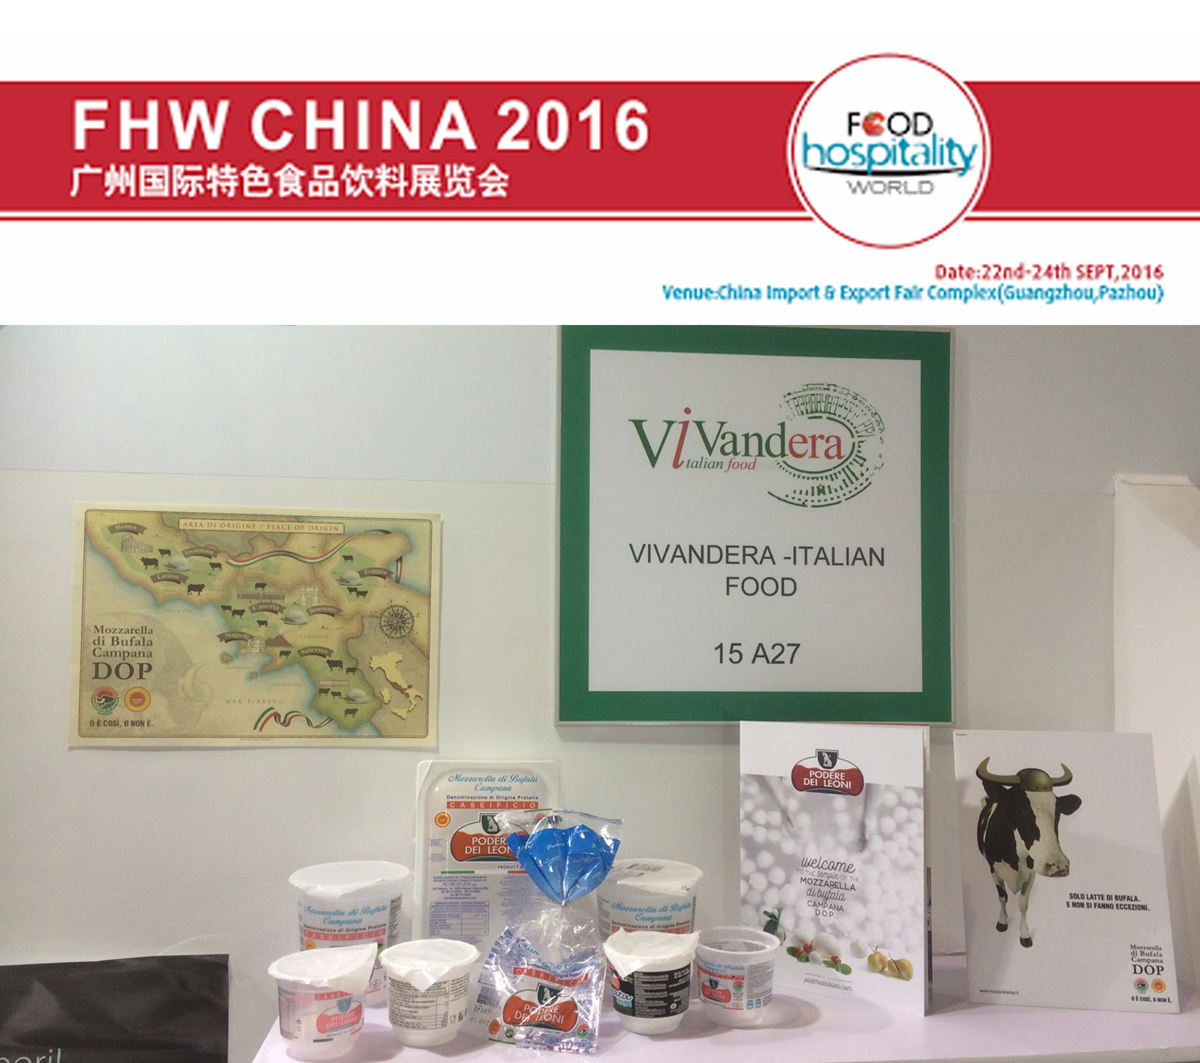 Il Podere dei Leoni al Food Hospitality World China 2016